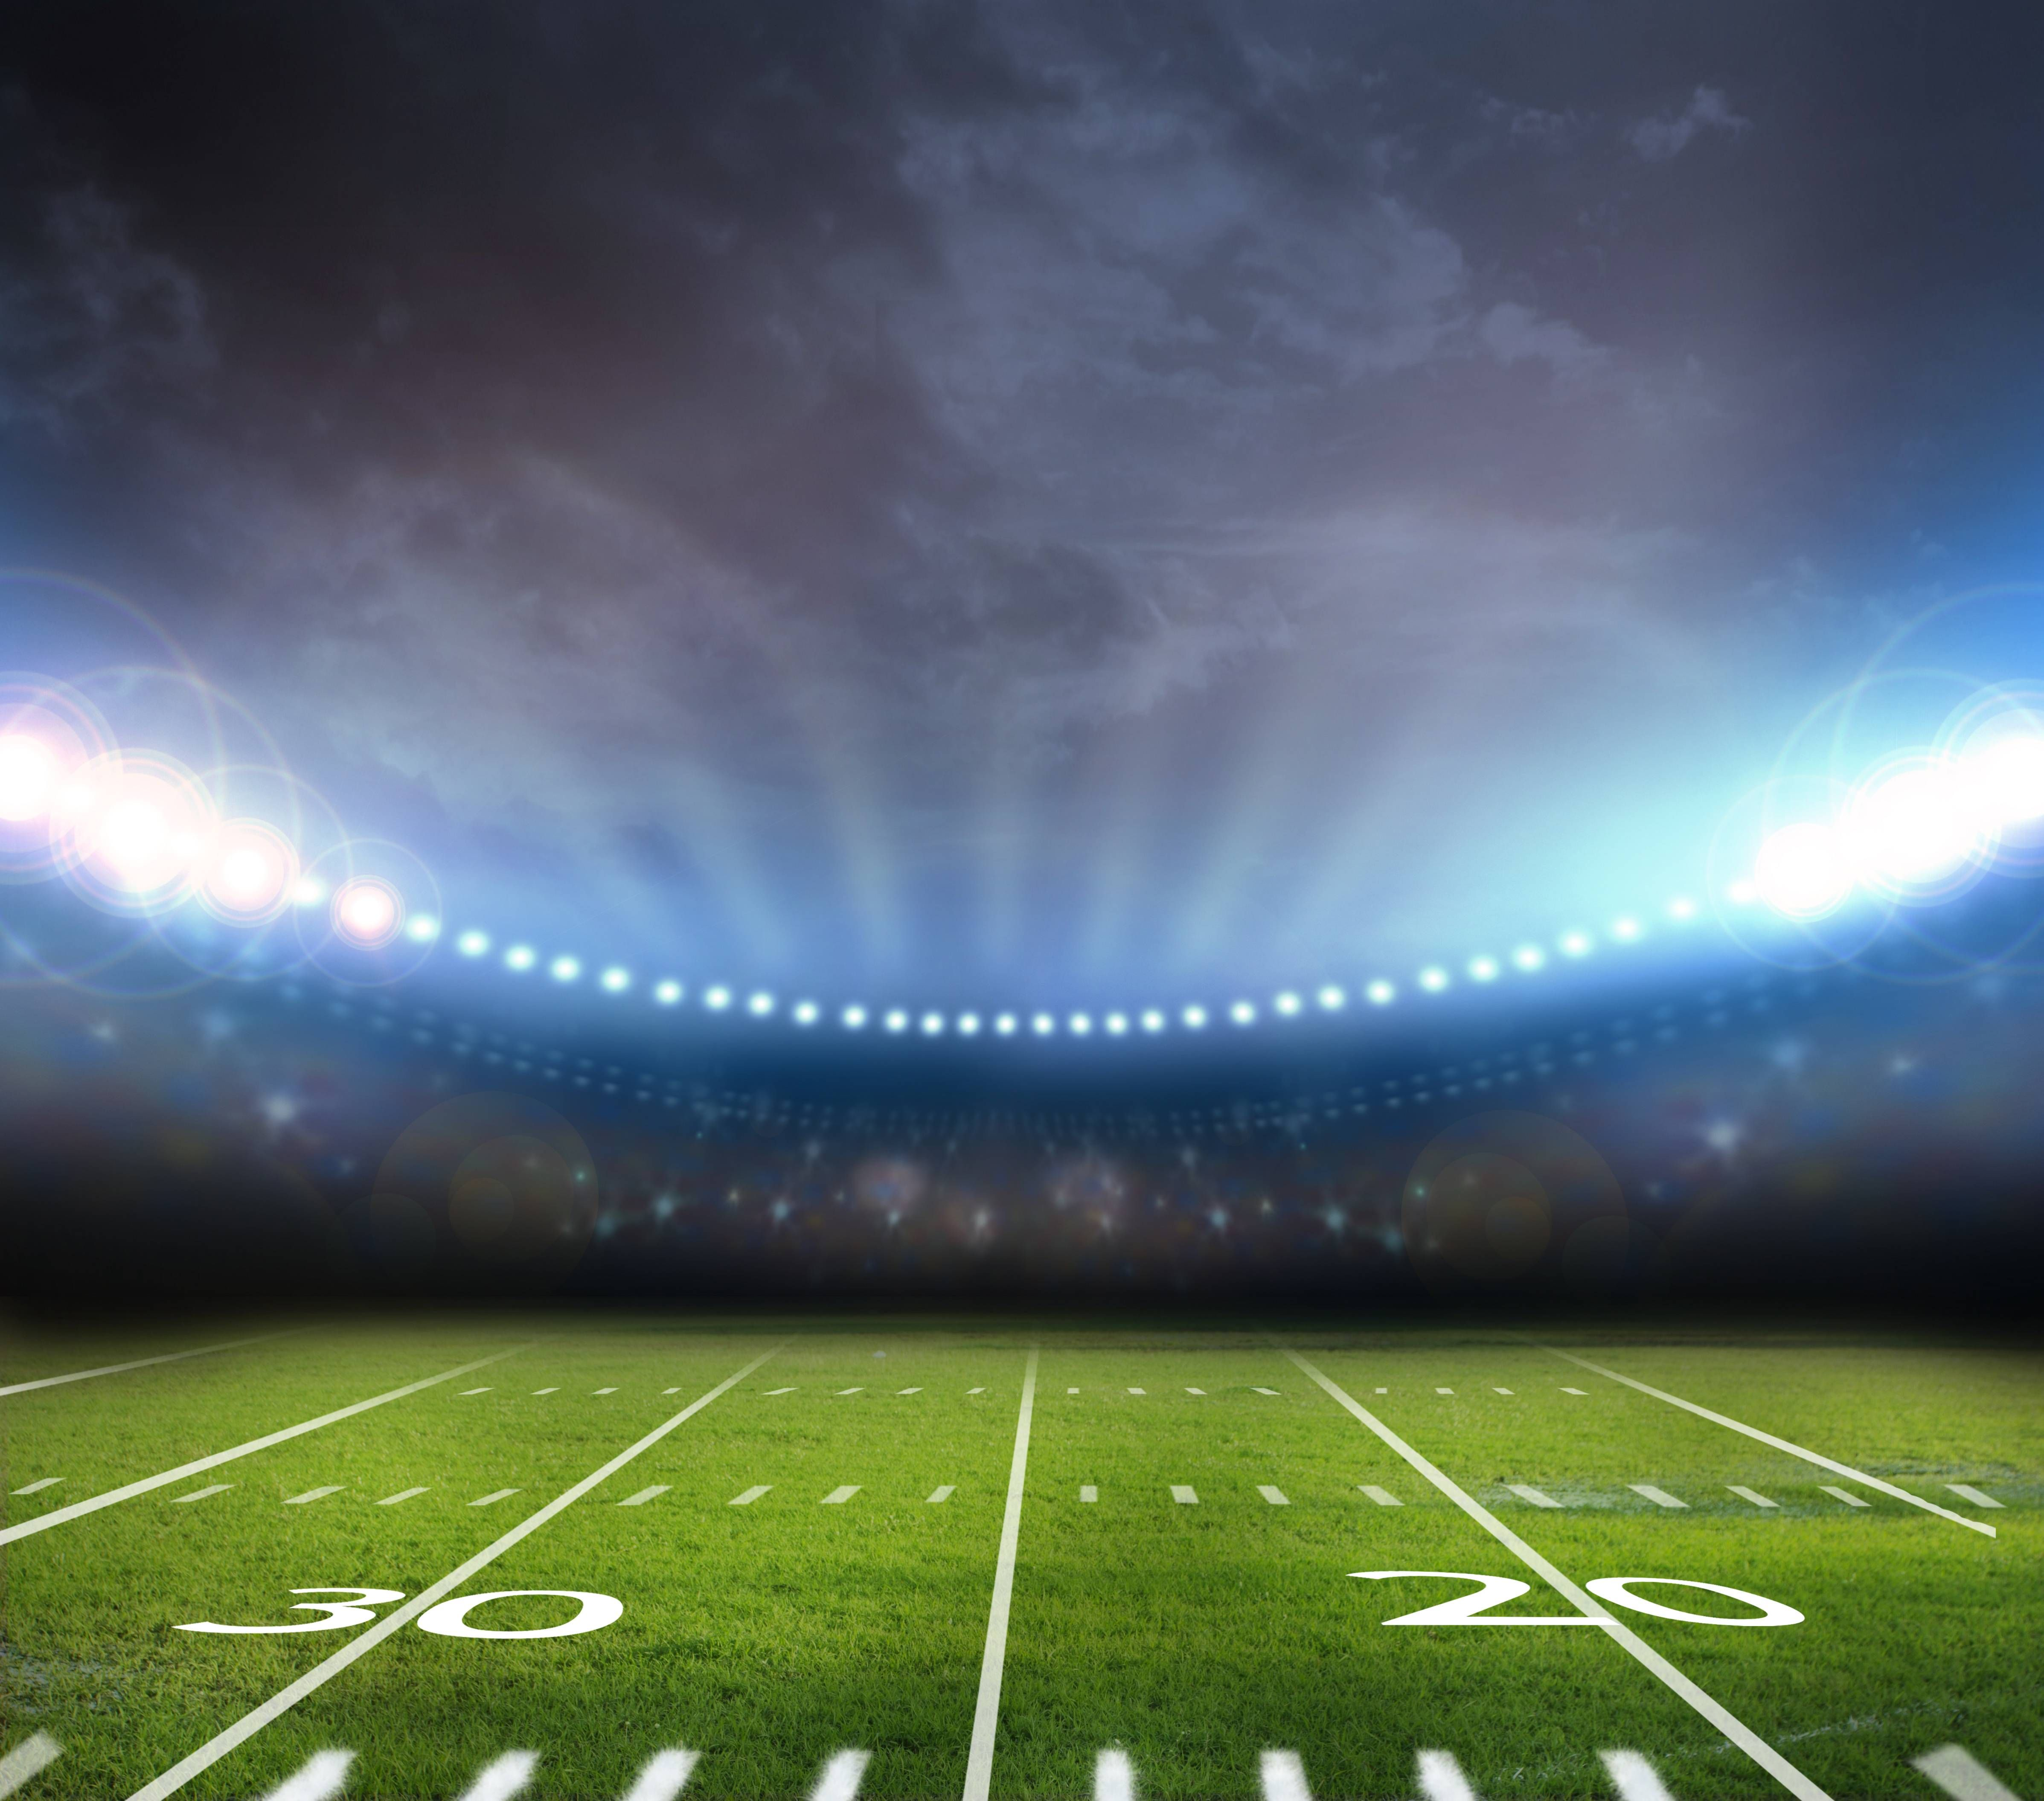 Youth Football Planning For The End Field Wallpaper Football Field Football Stadiums